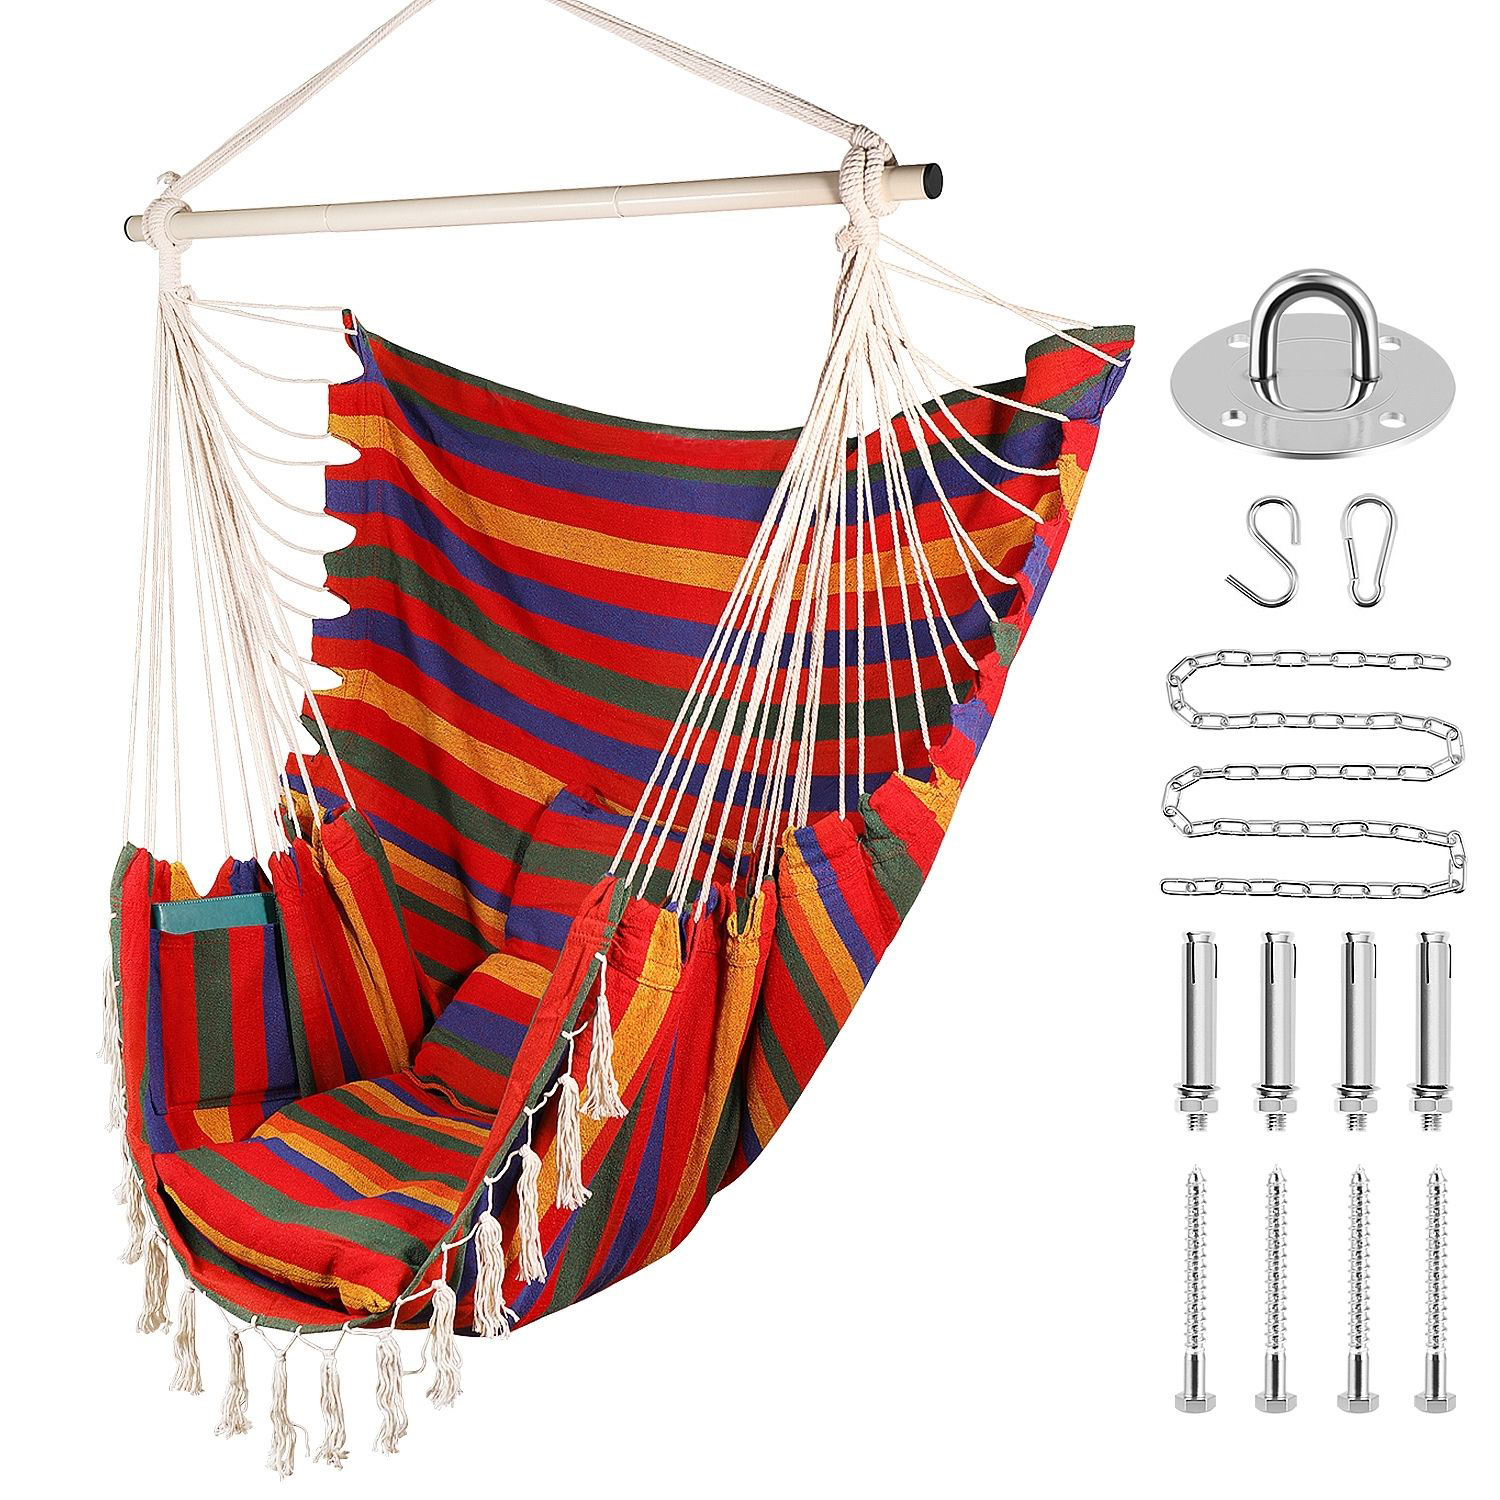 Indoor Swing Chair hammock swing chair hanging rope chair portable porch seat for